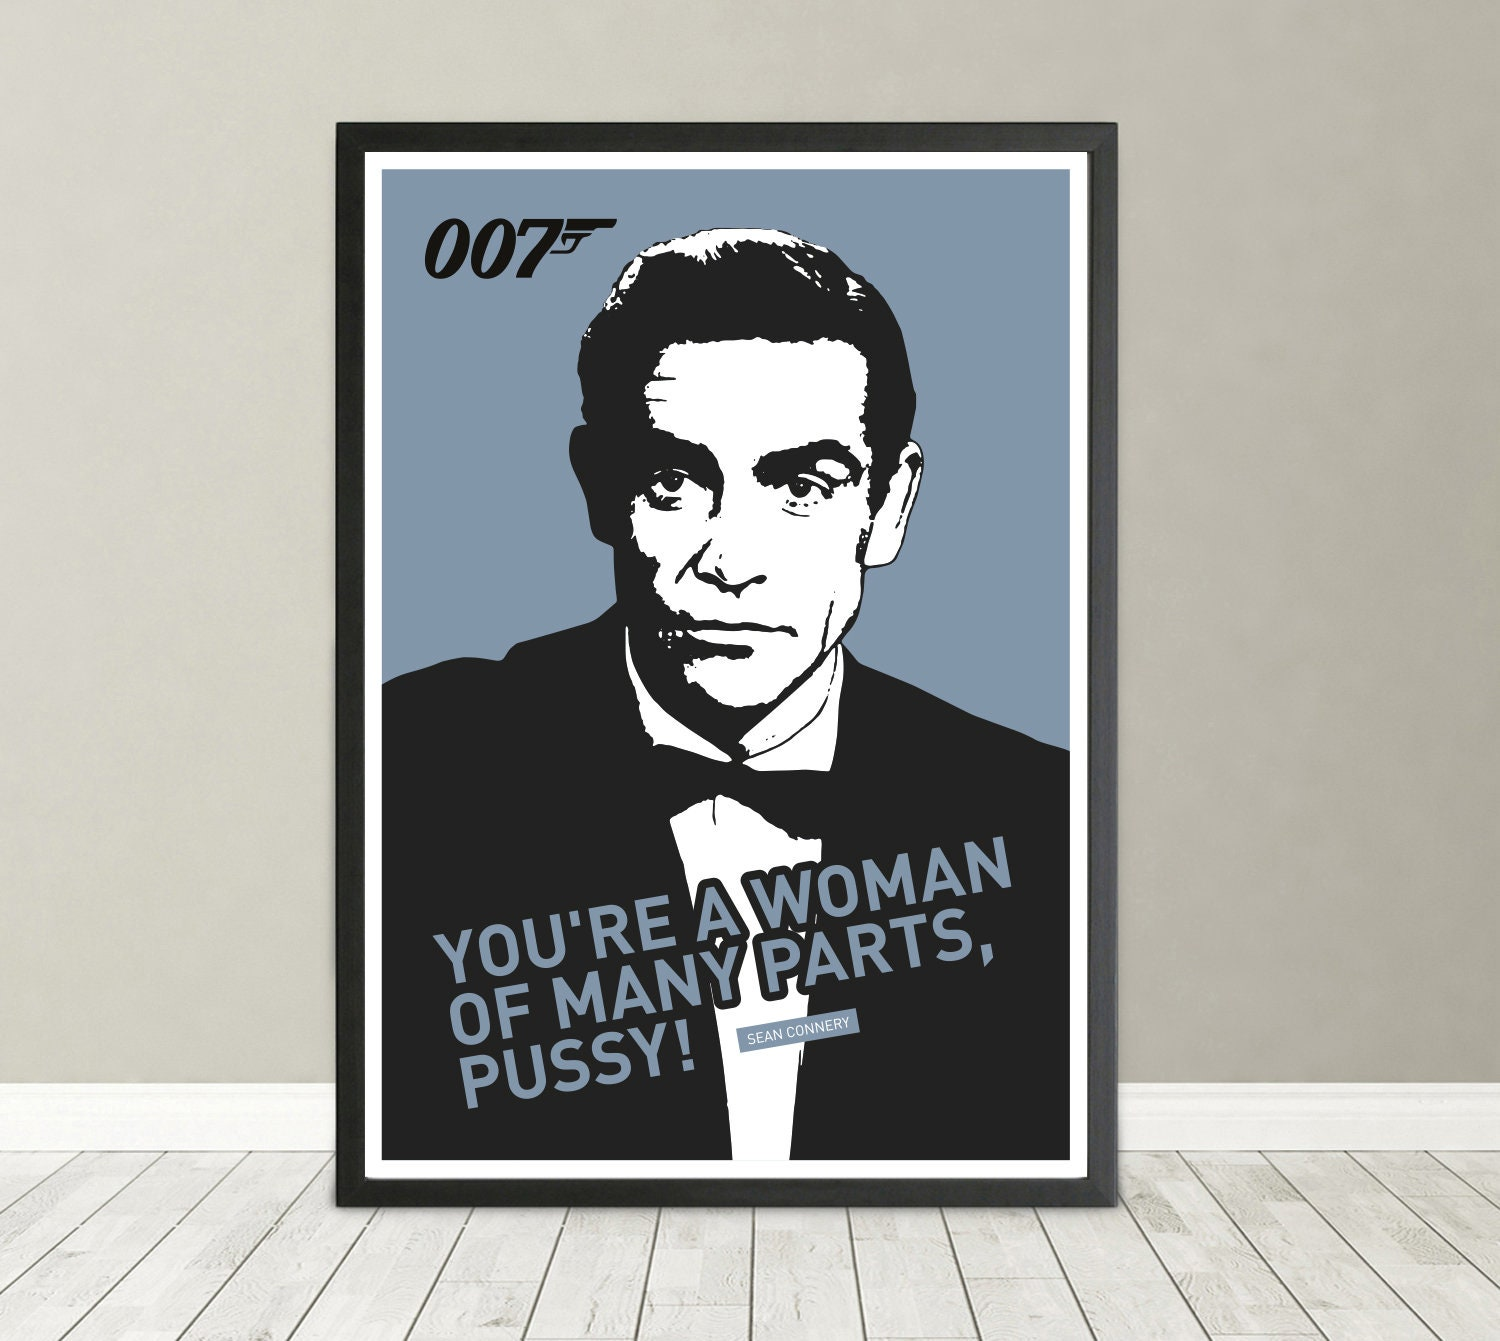 James Bond Sean Connery 007 Goldfinger 1964 Portrait Etsy